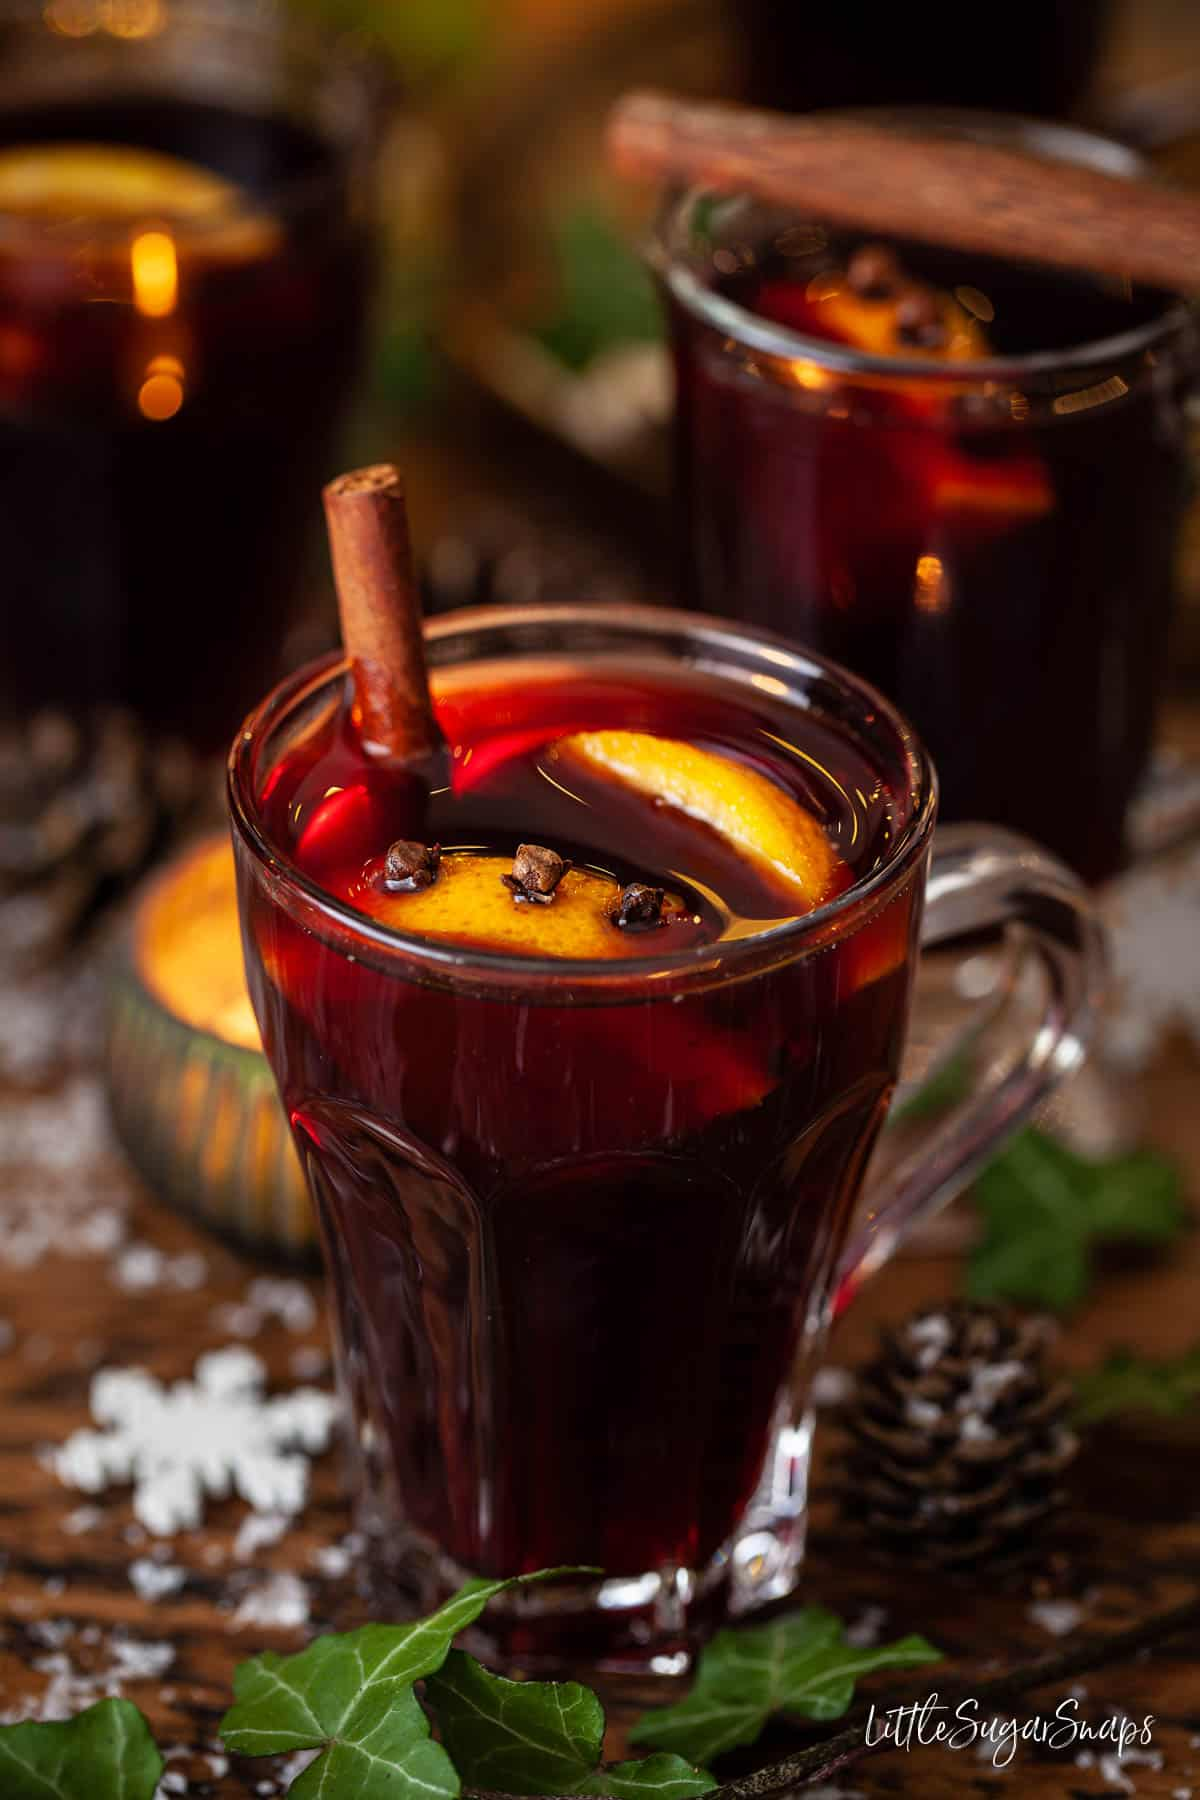 A glass of mulled wine with cinnamon, orange slices and cloves